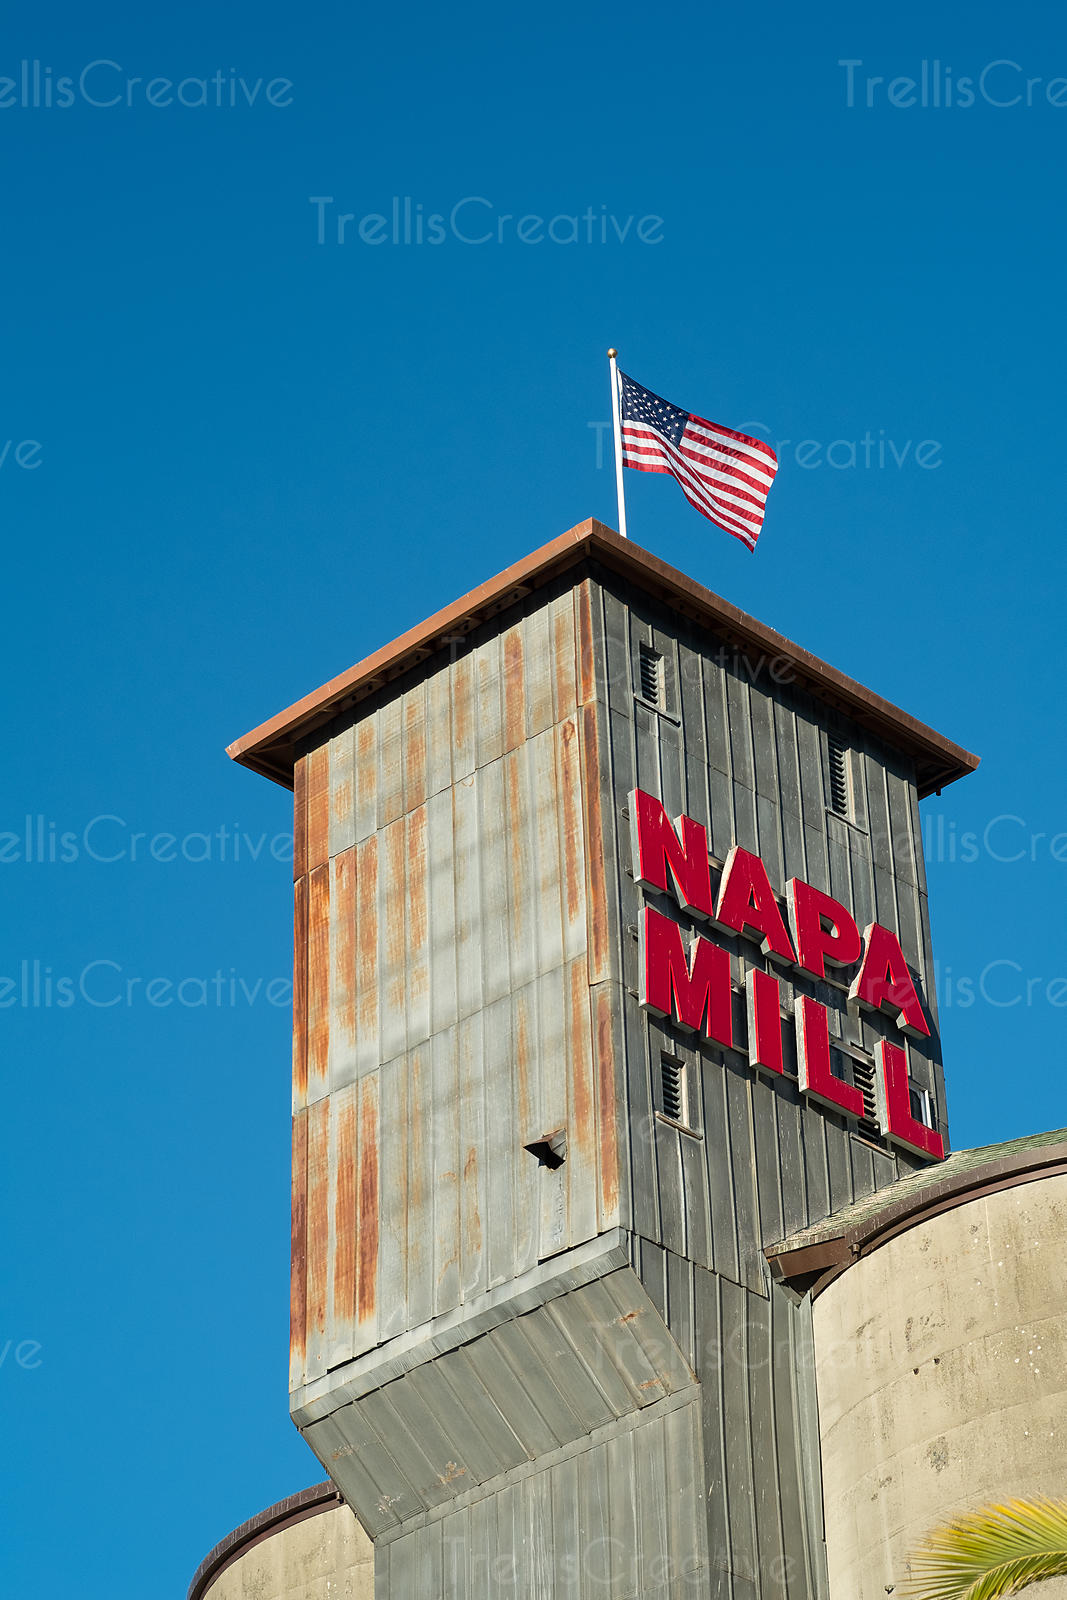 Napa Mill standing tall against the clear blue sky with the American flag flying majestically on top